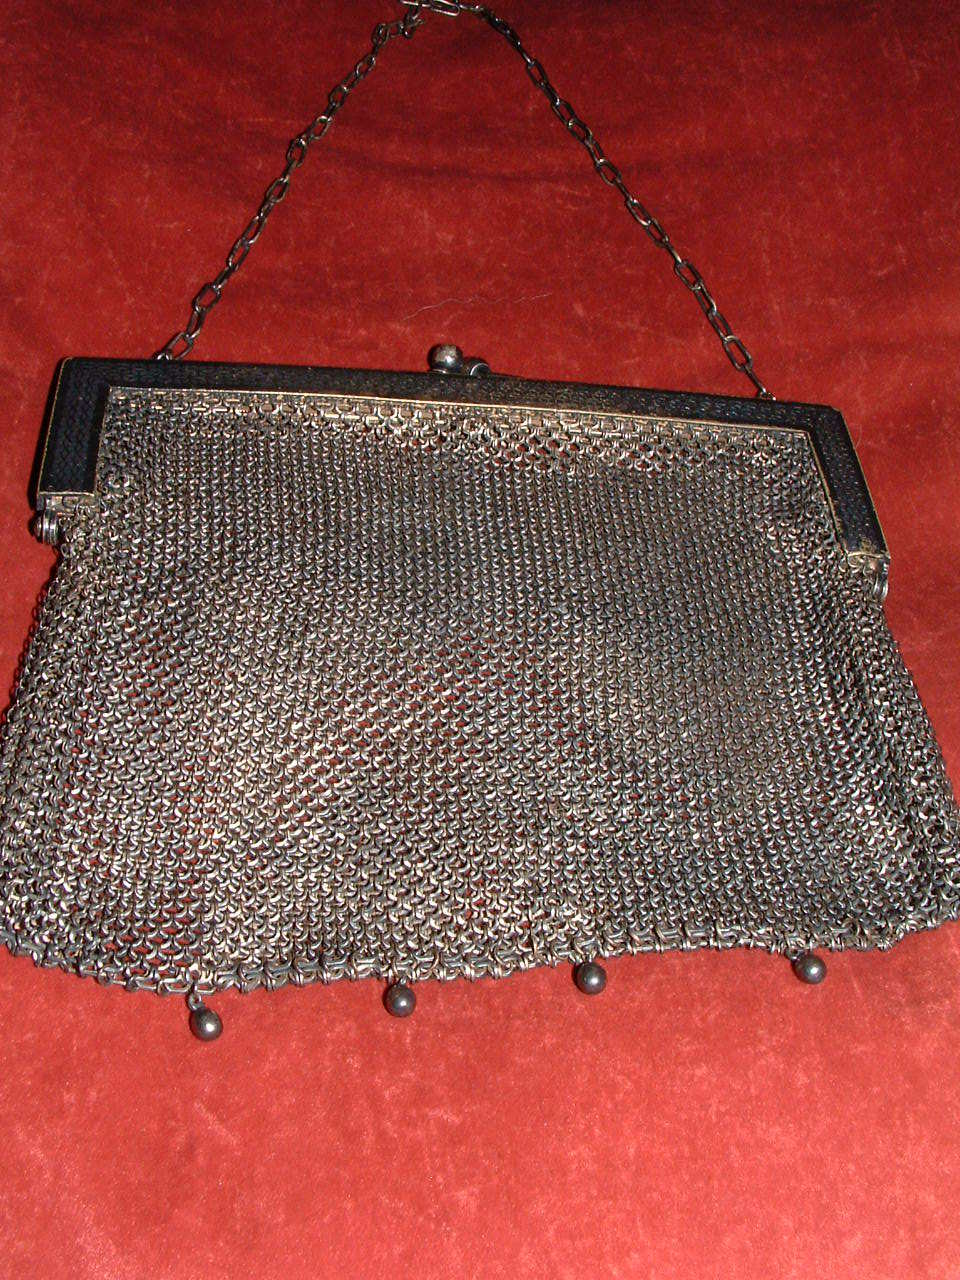 GERMAN SILVER LATE 1800'S SILVER MESH PURSE/ HANDBAG